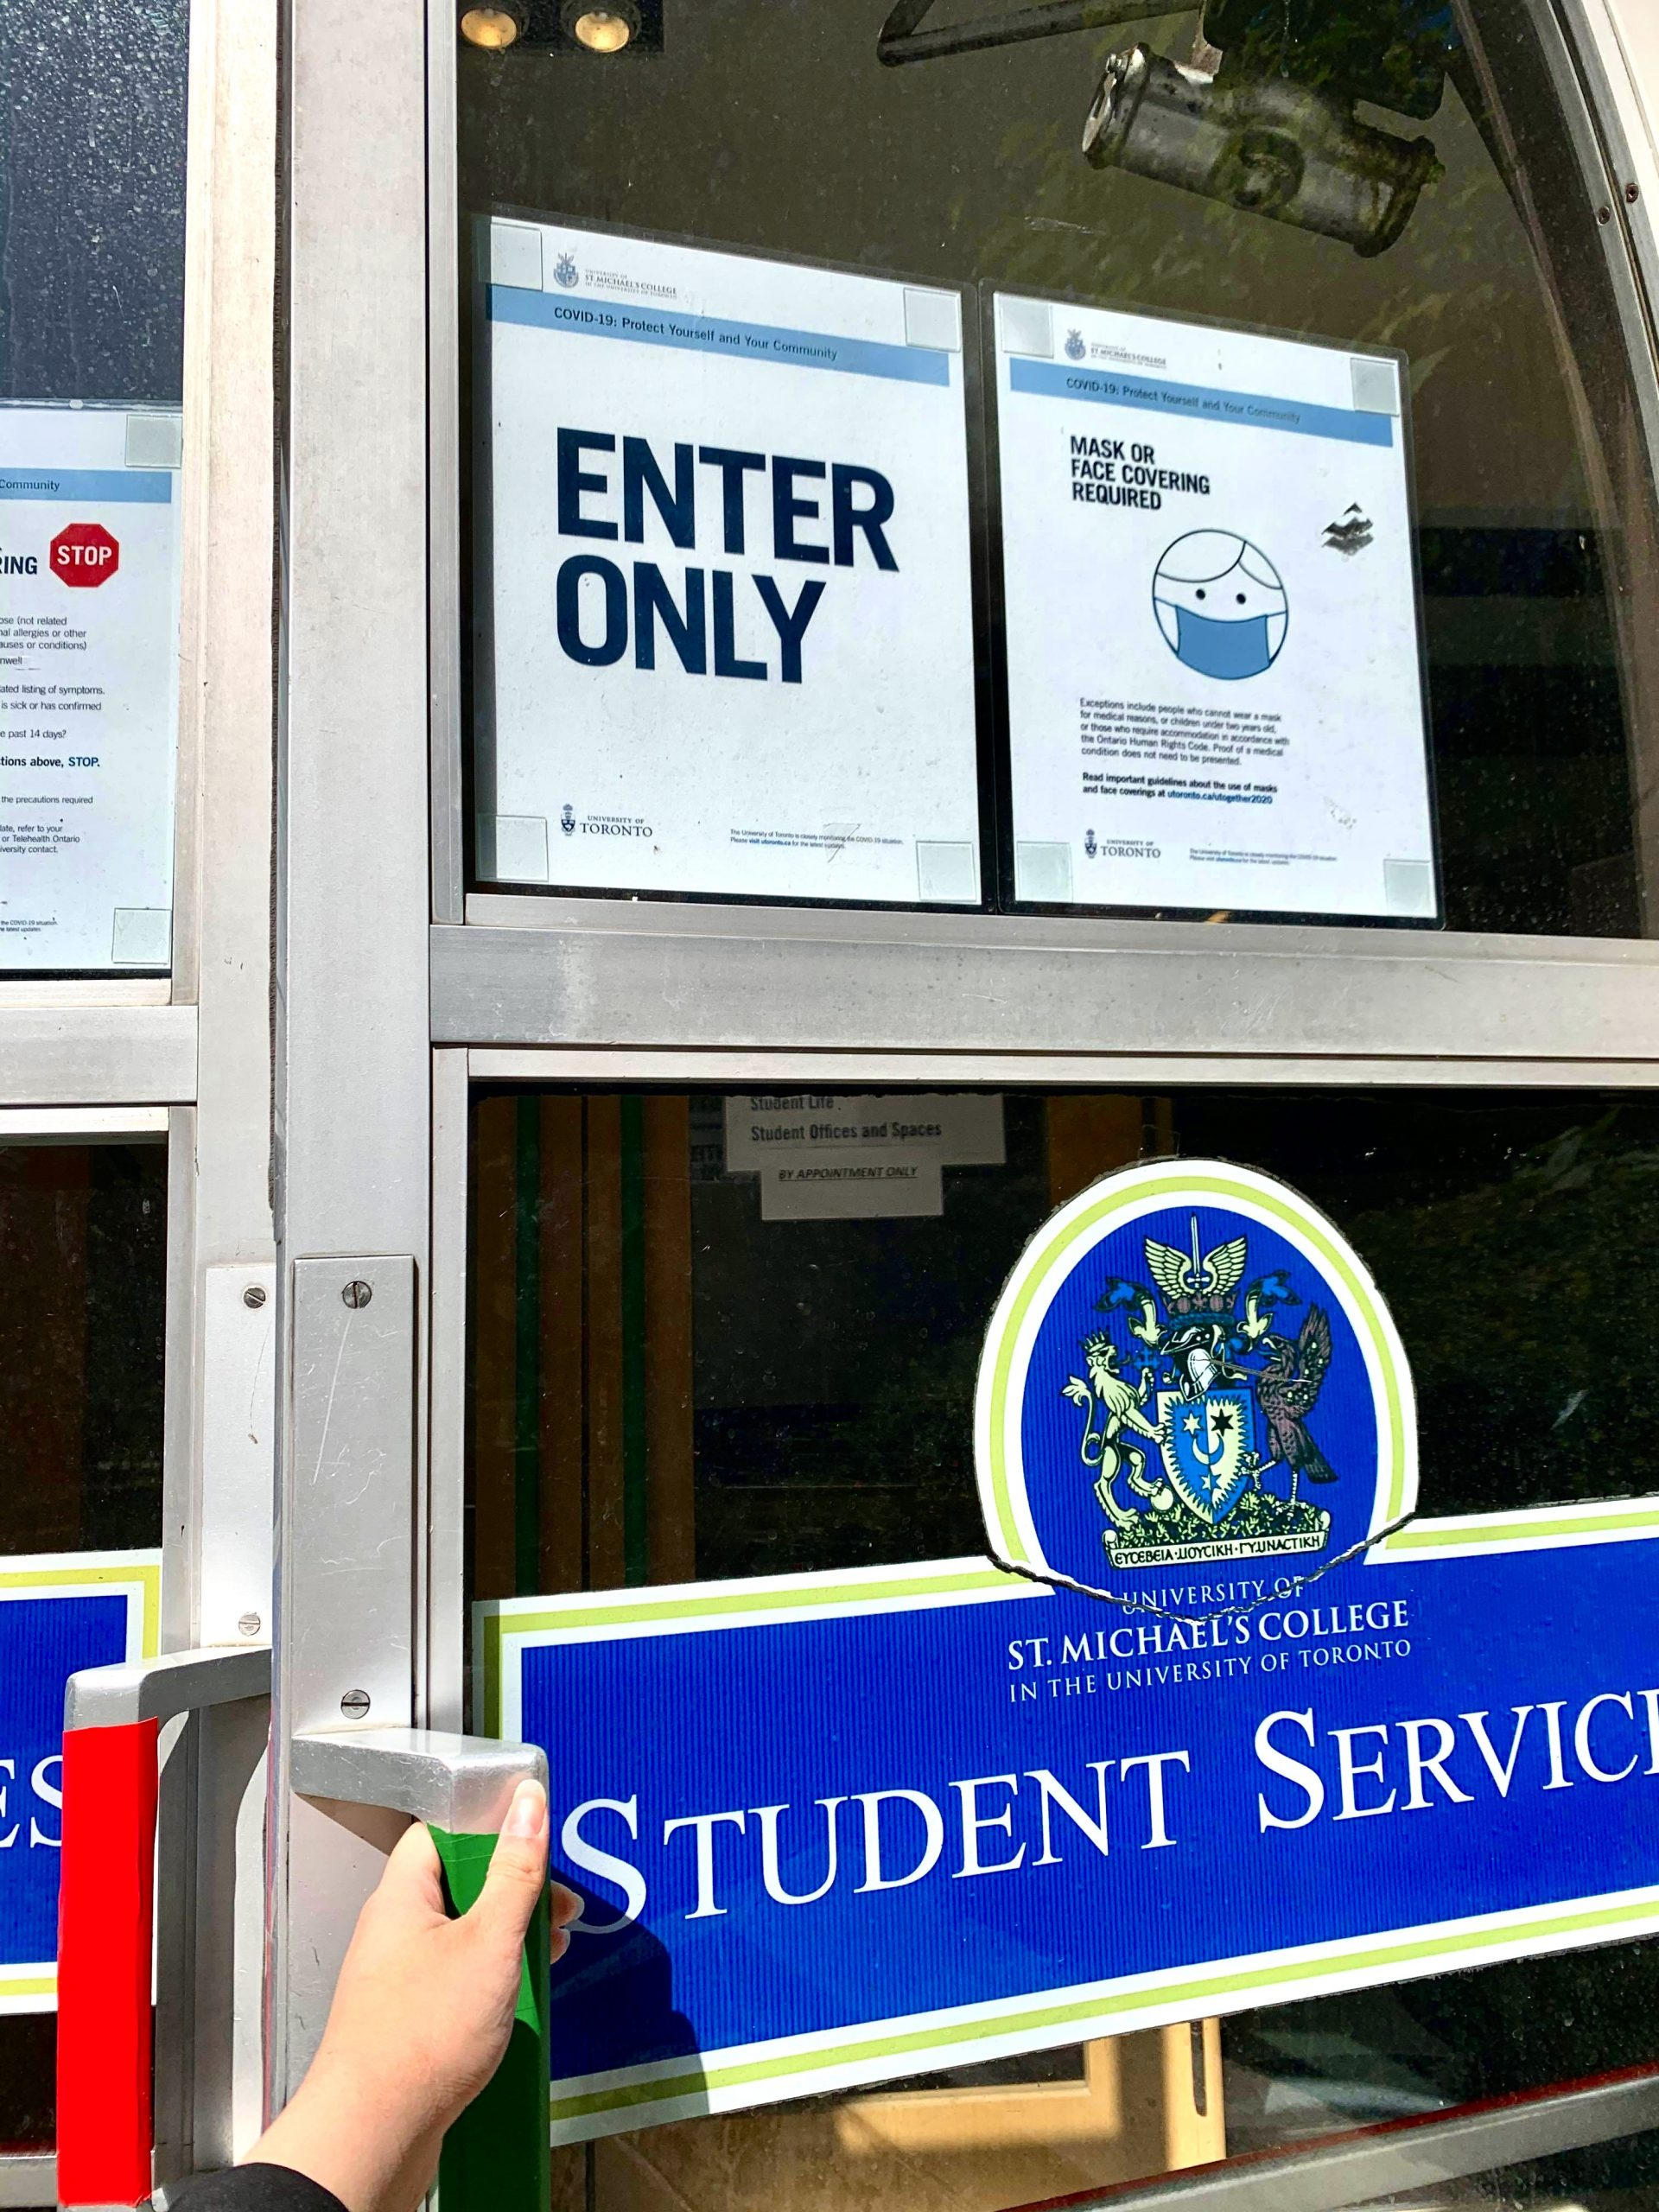 U of T Reopening Plans Met With Criticism From Prominent Unions Within The University